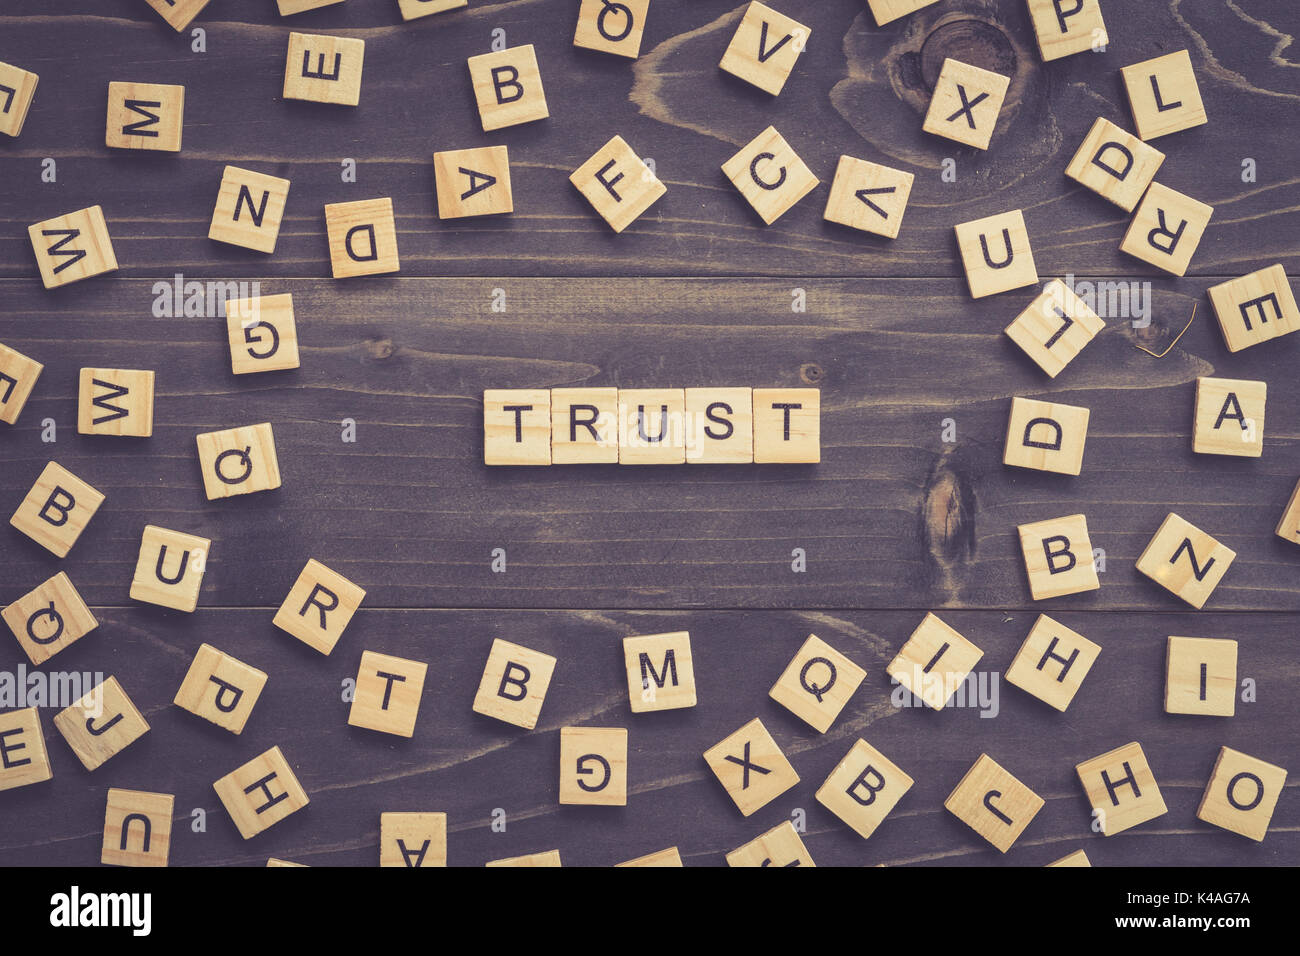 TRUST word wood block on table for business concept. - Stock Image